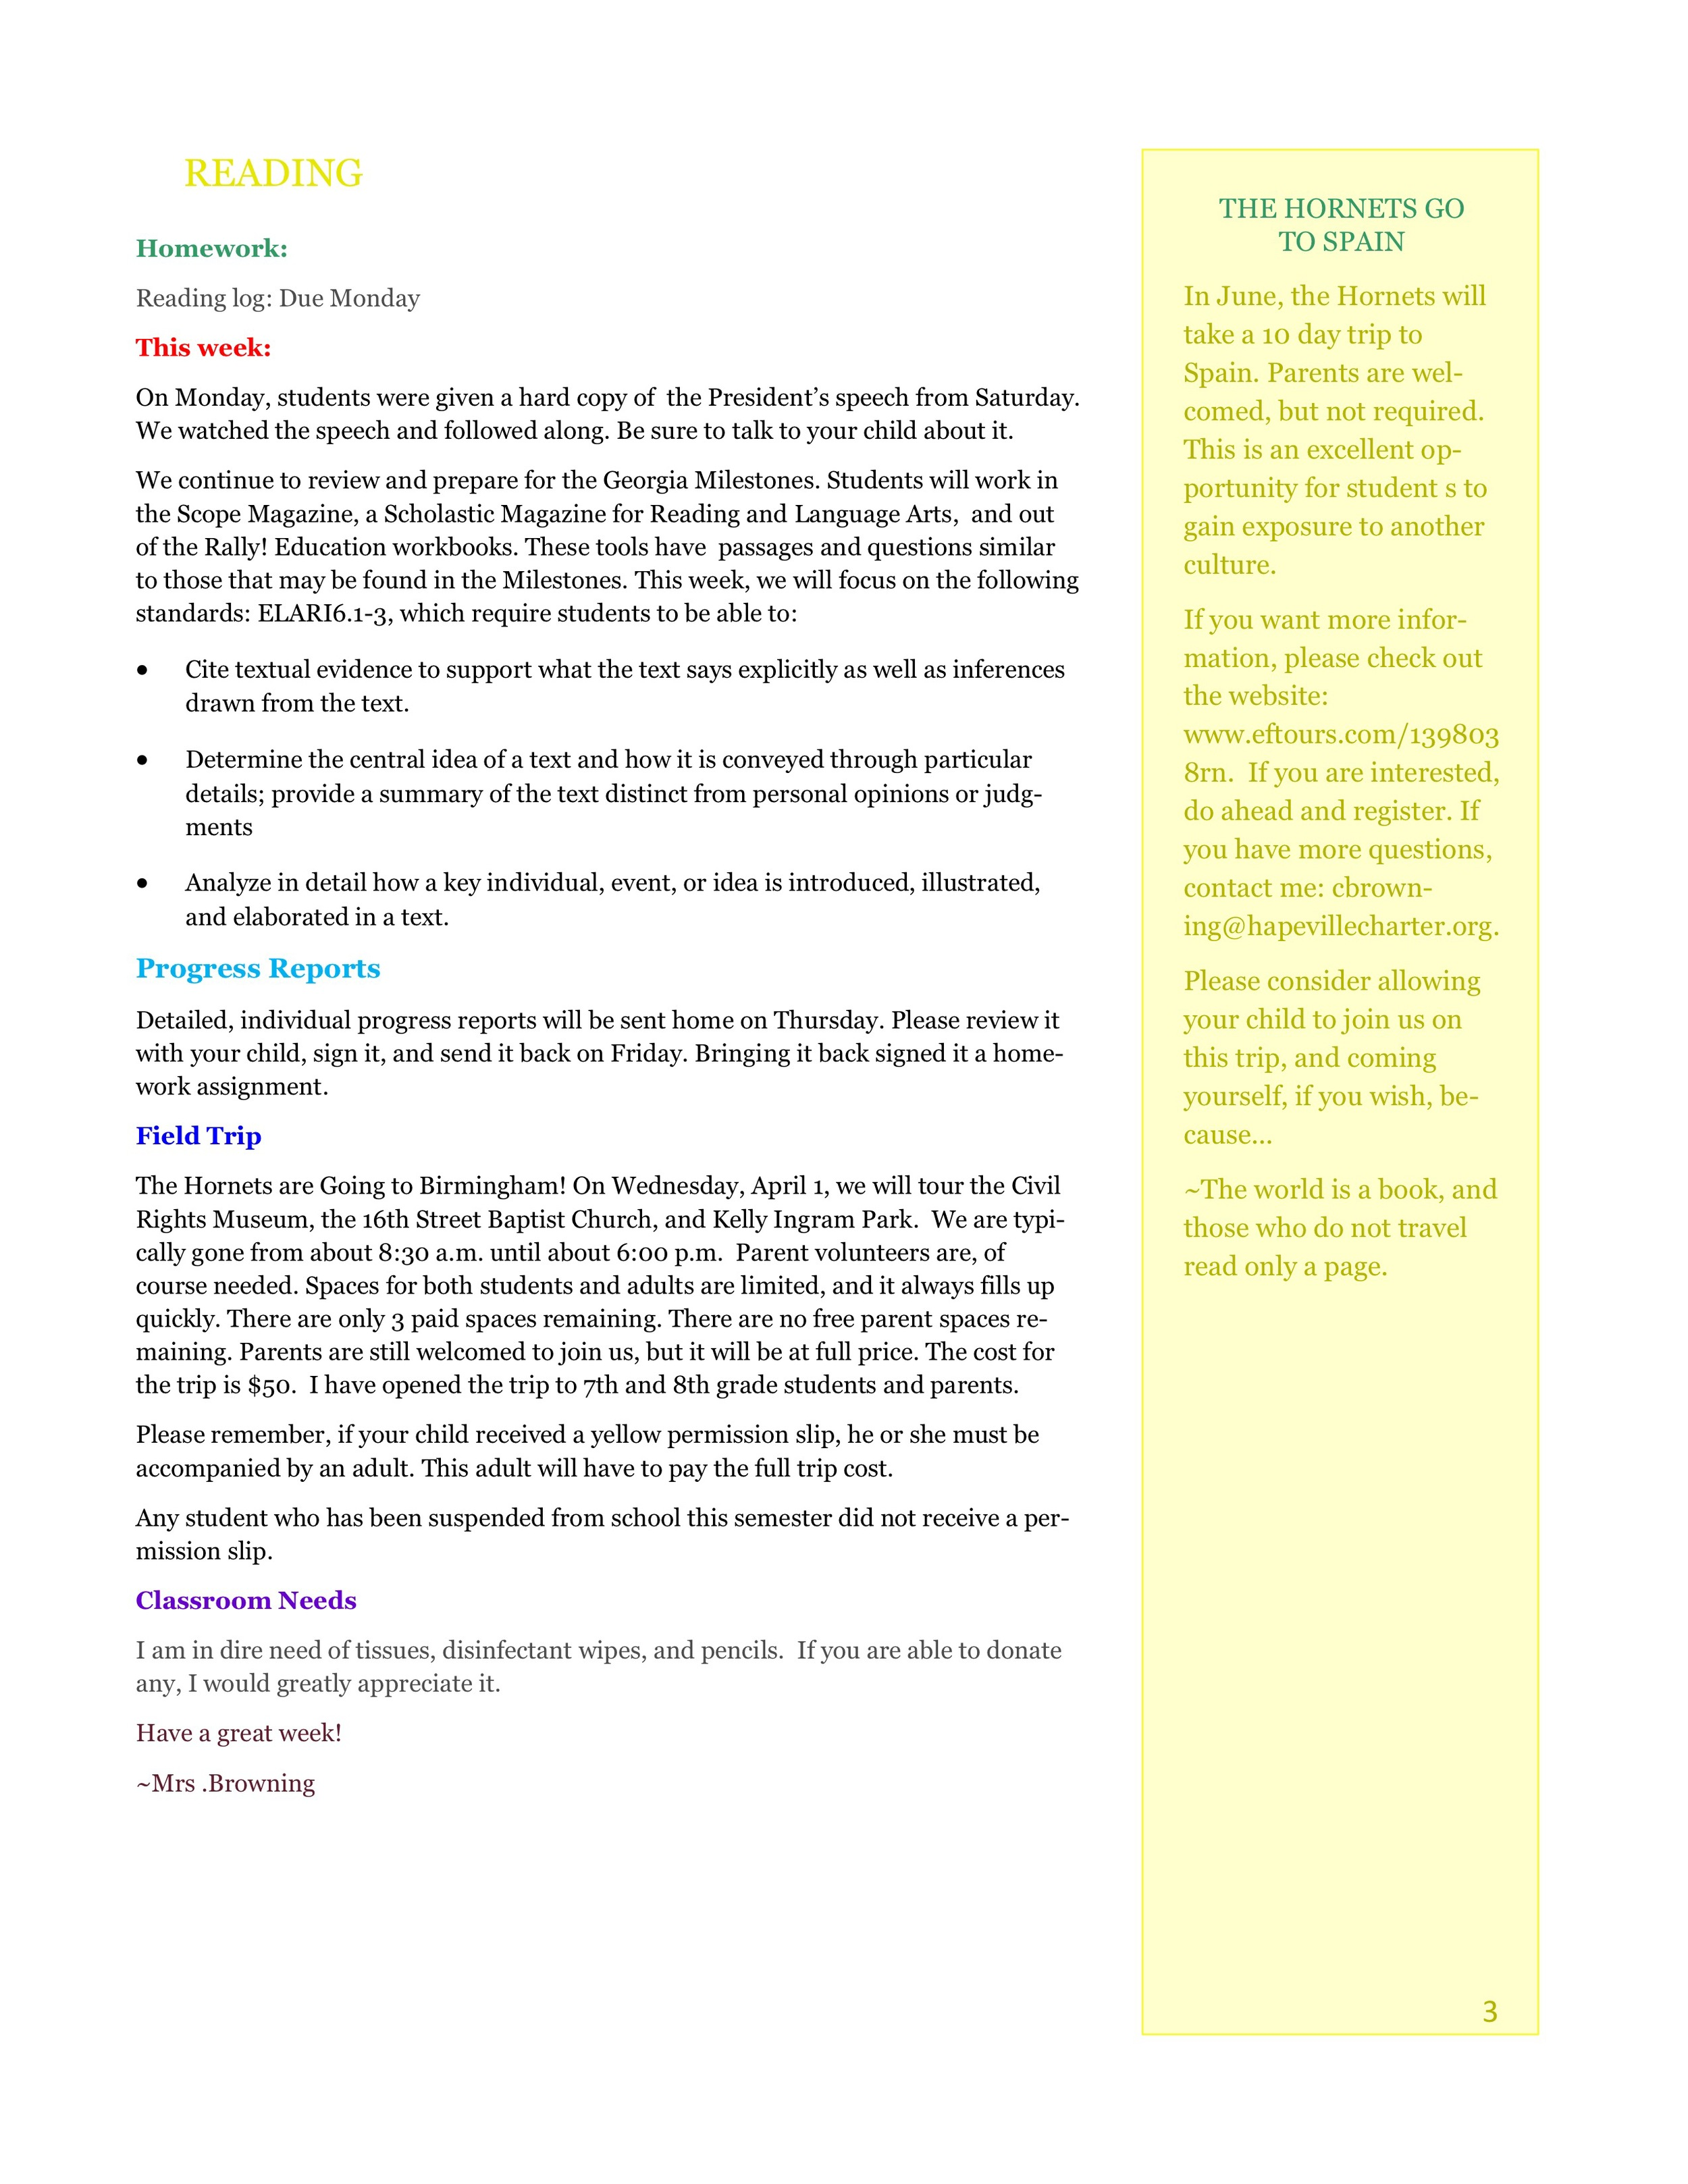 Newsletter Image6th grade March 9-13 3.jpeg